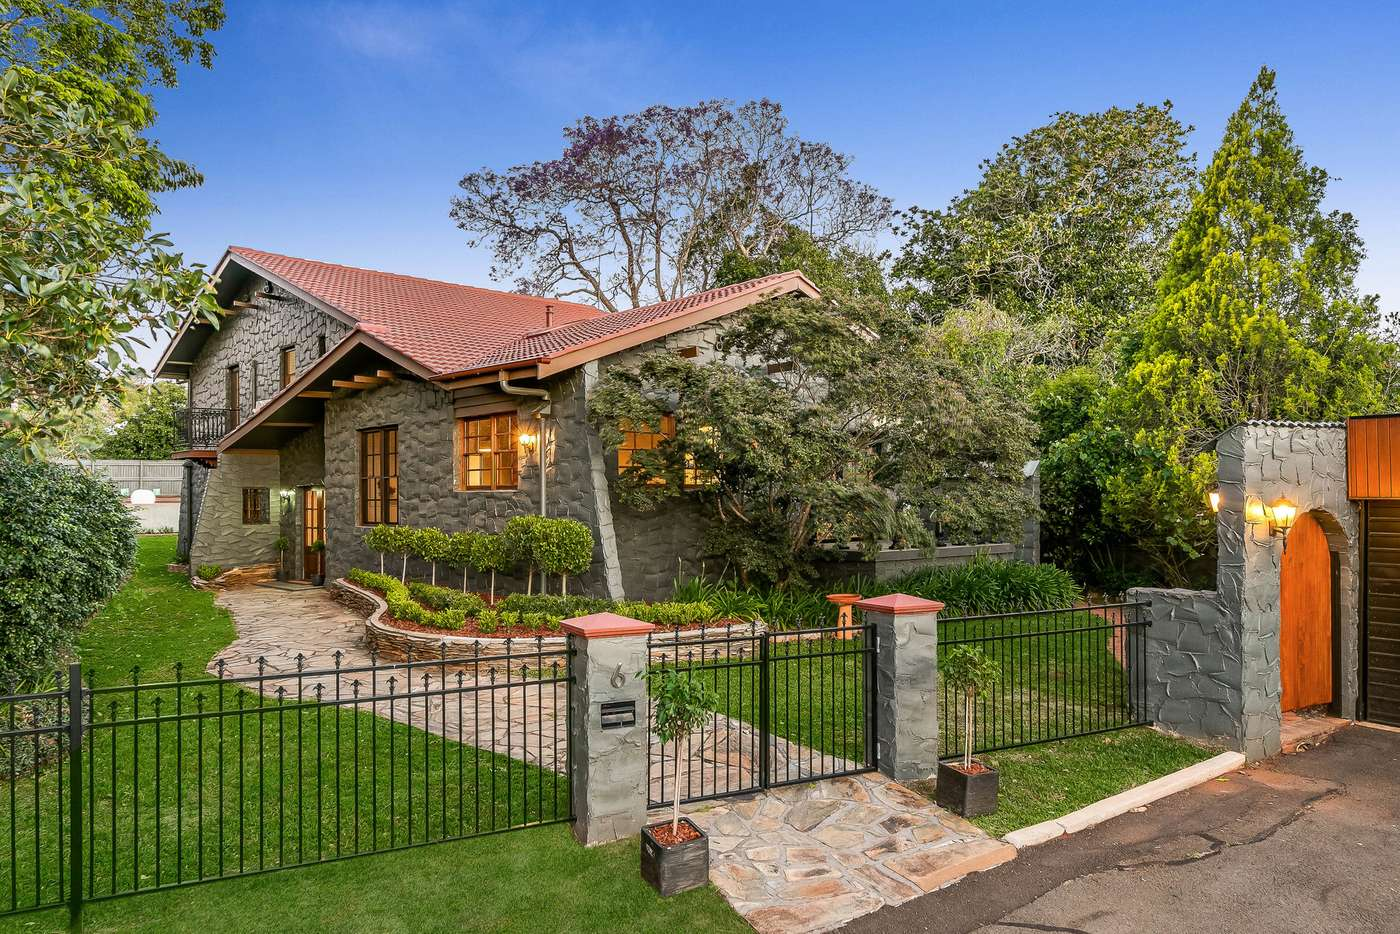 Main view of Homely house listing, 6 Hickey Street, East Toowoomba QLD 4350